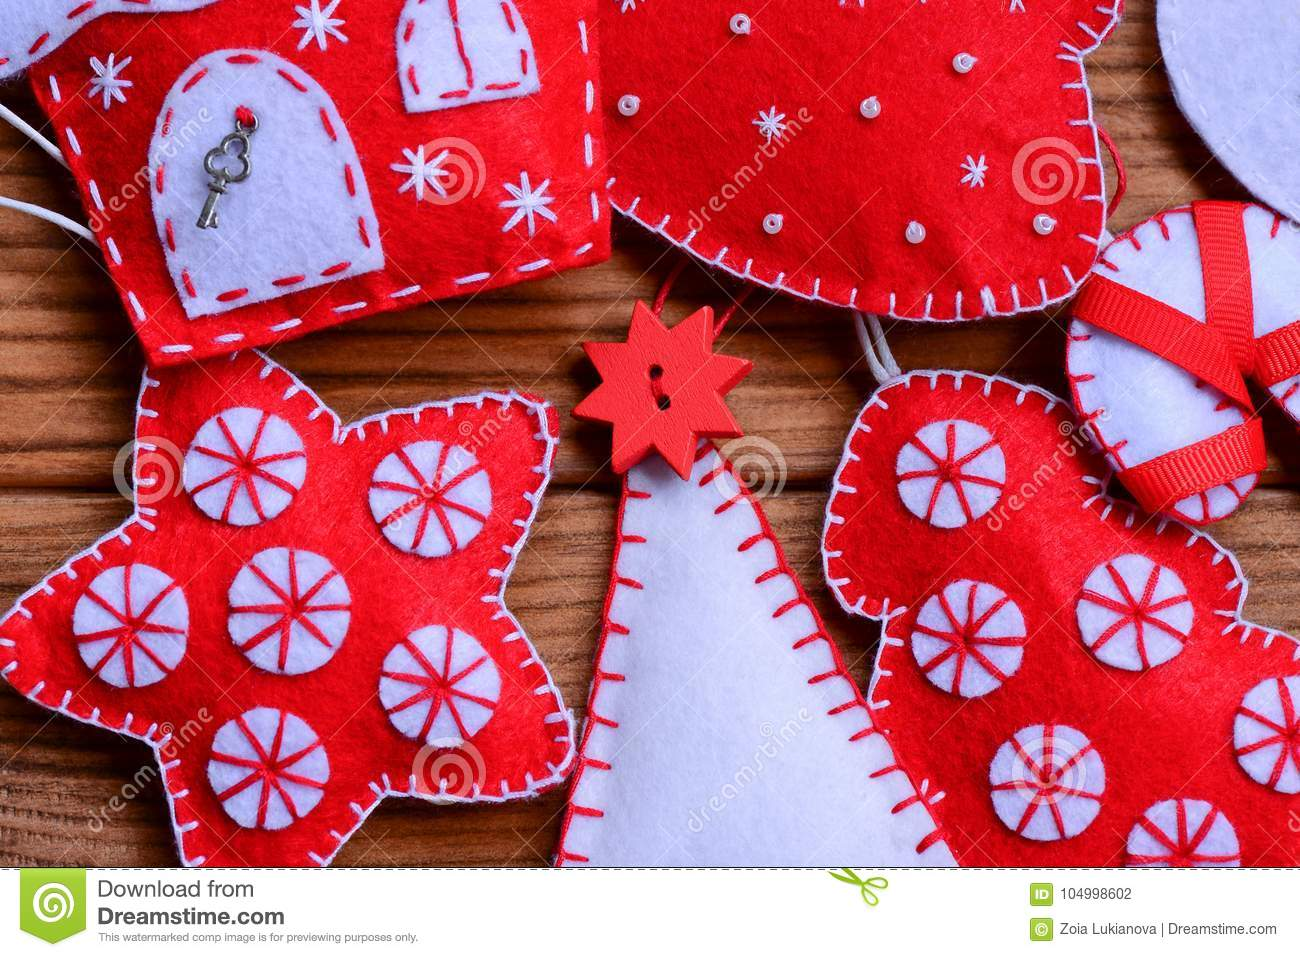 Easy Christmas Crafts To Sell.Felt Christmas Decor On A Wooden Background Felt Christmas